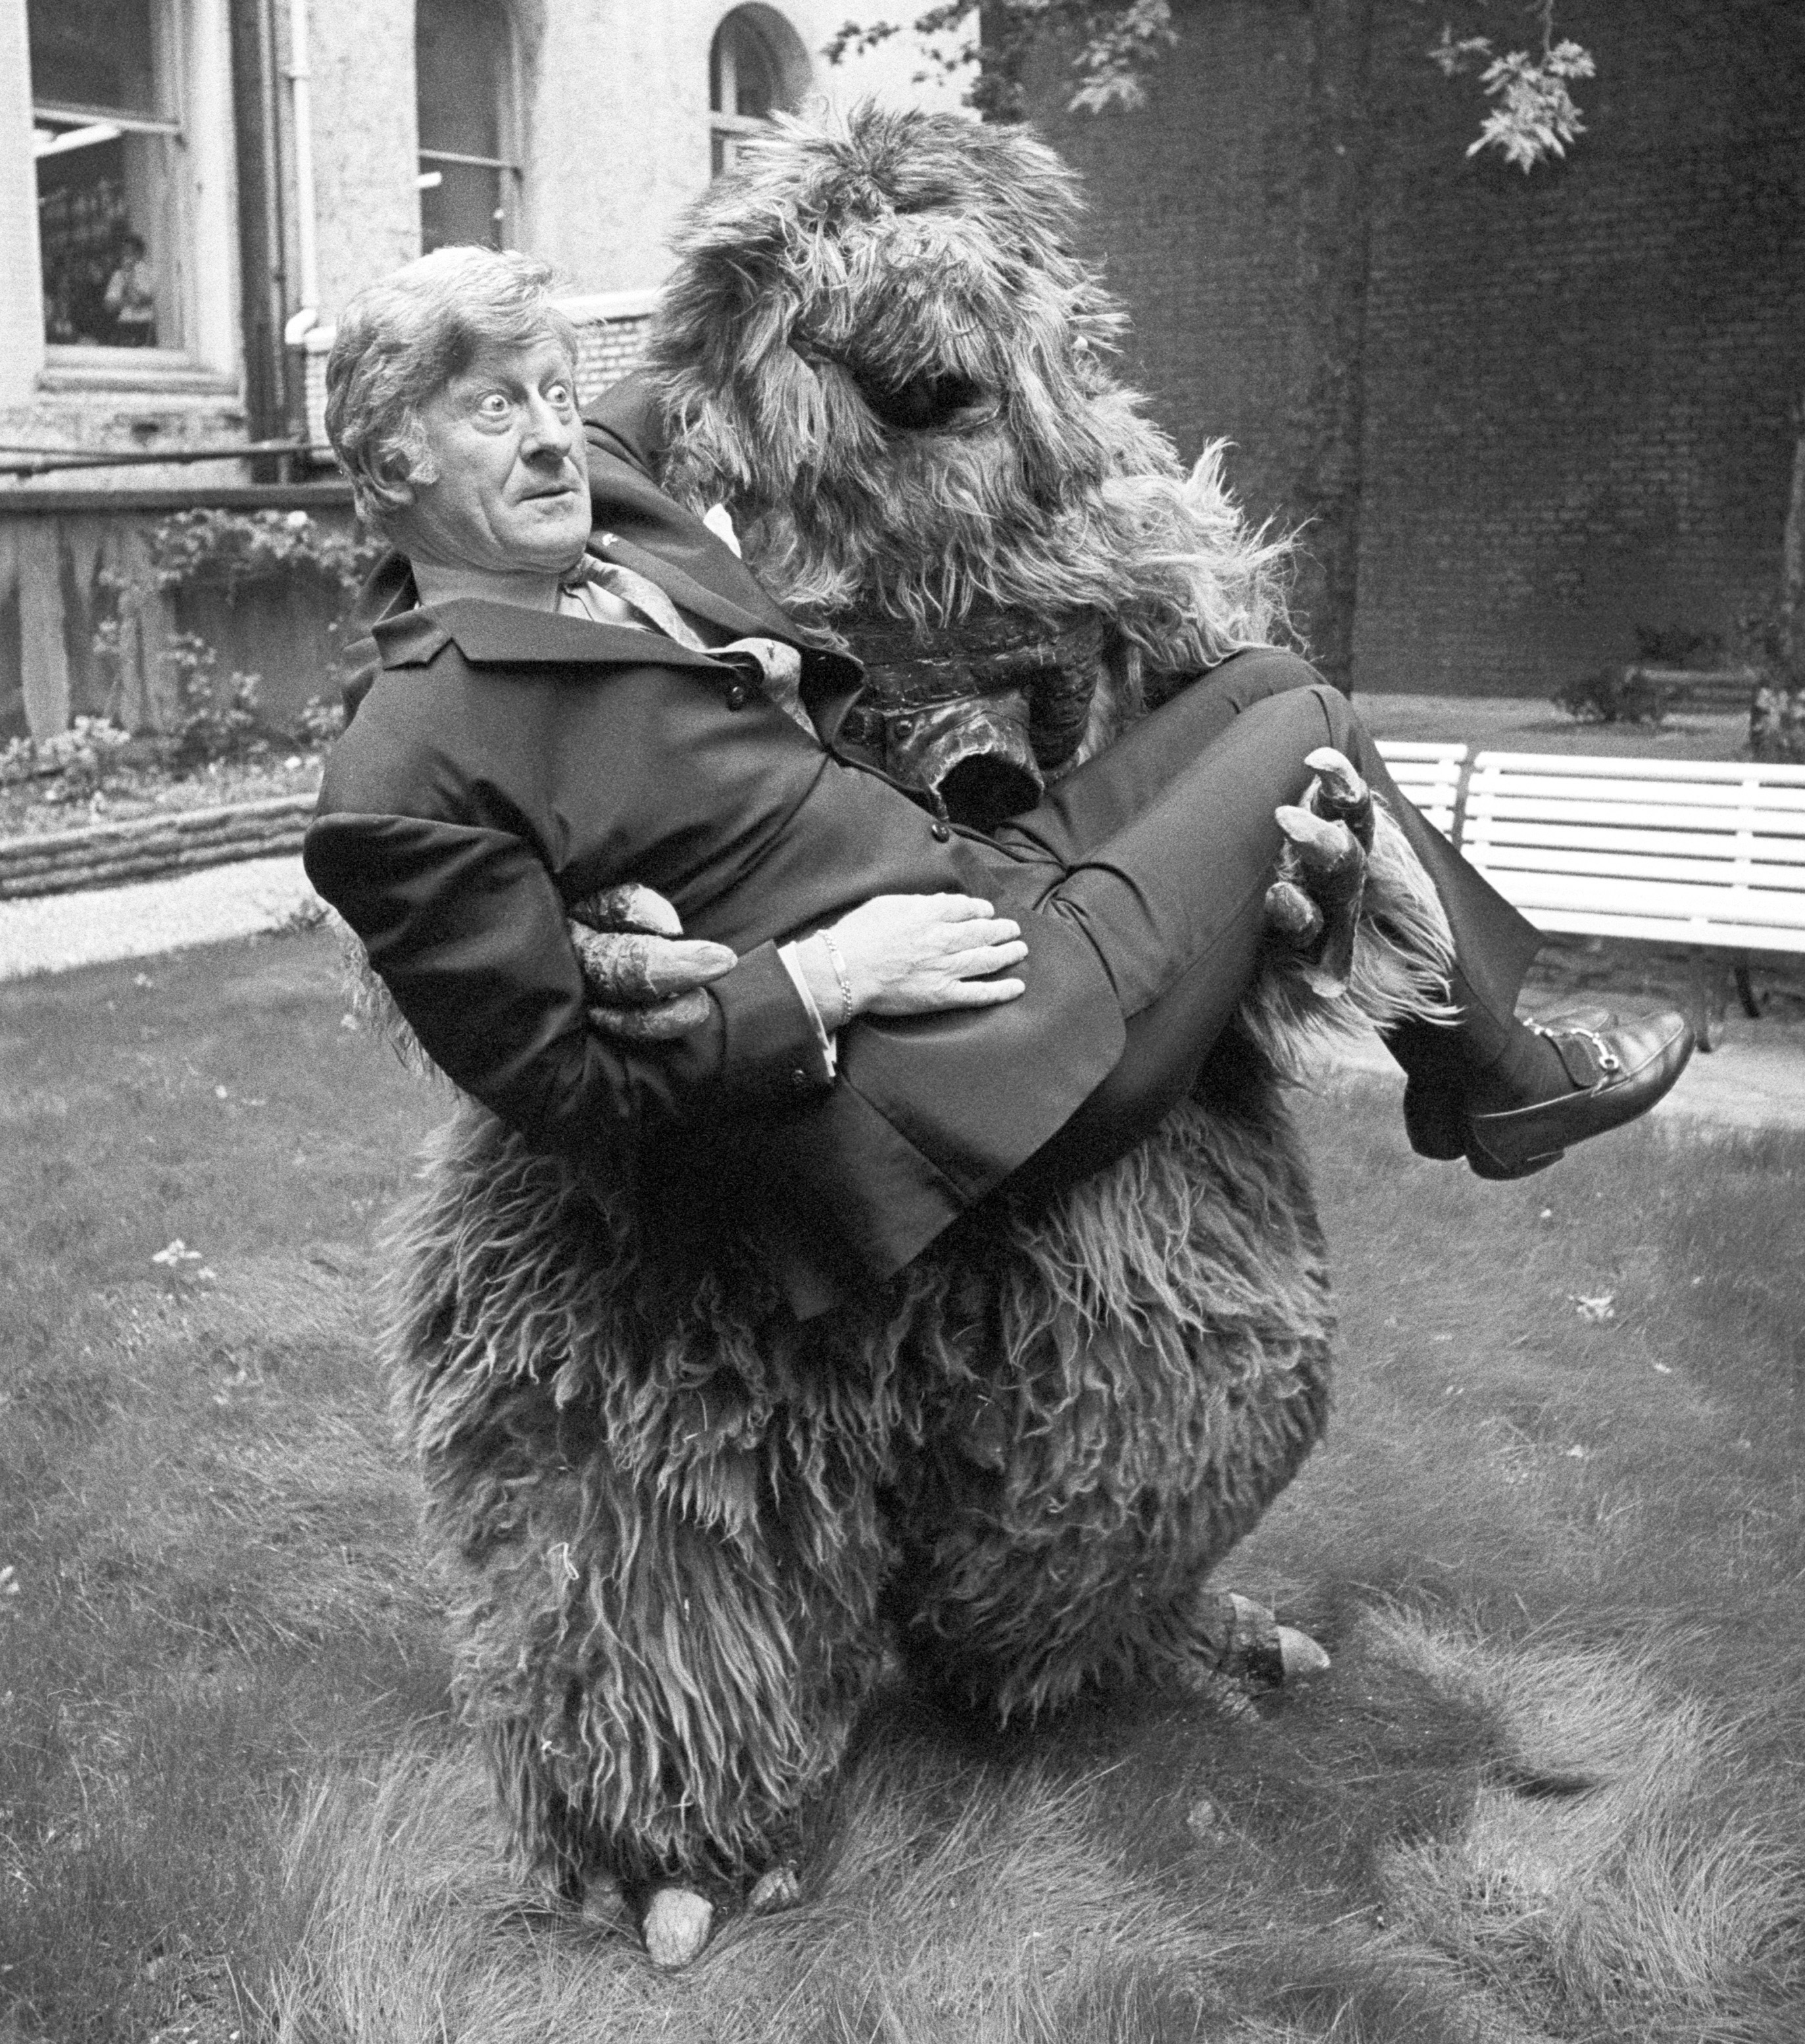 Doctor Who and yeti.